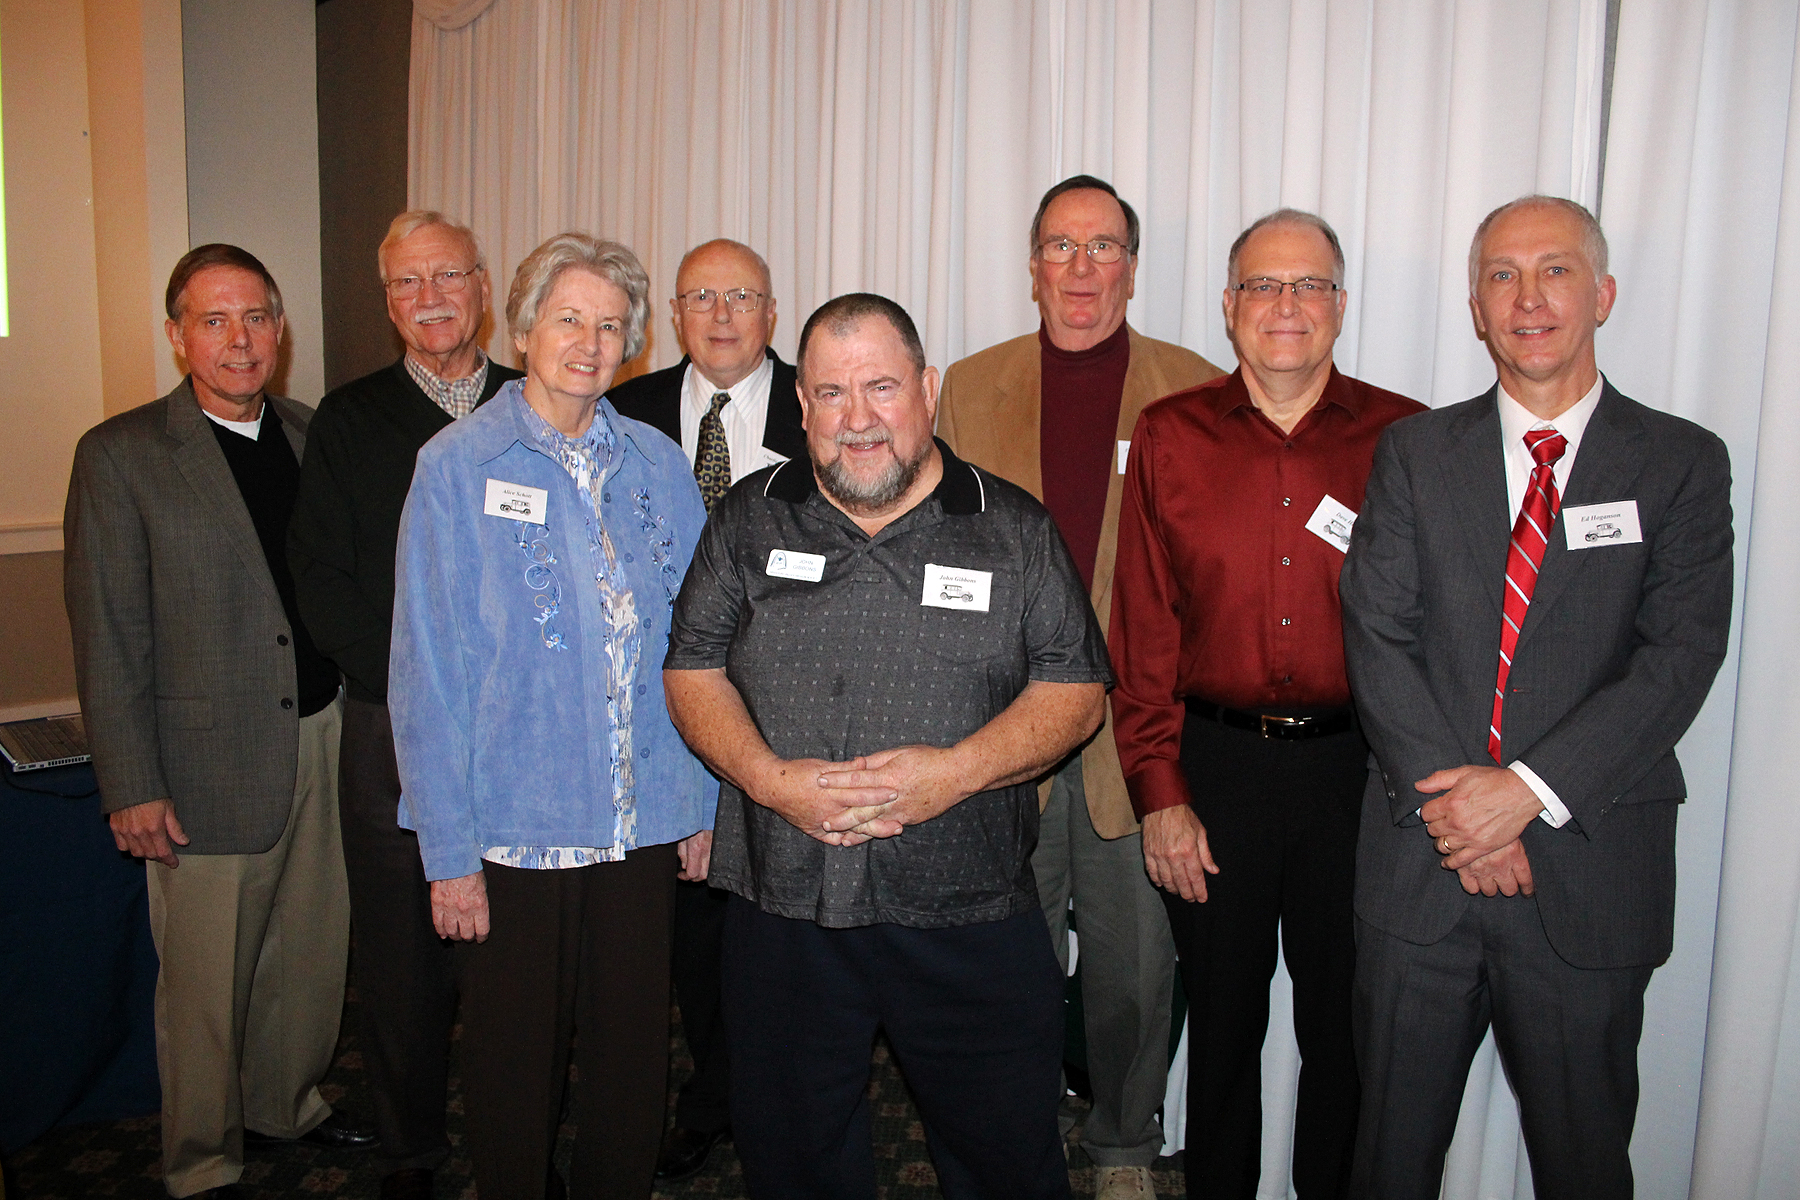 2016 board: Greg Piel, Tom Holtgrave, Alice Schott, Charlie Henerey, John Gibbons, Fred Burk, Dave Hitt (not pictured is Mike Rowles)